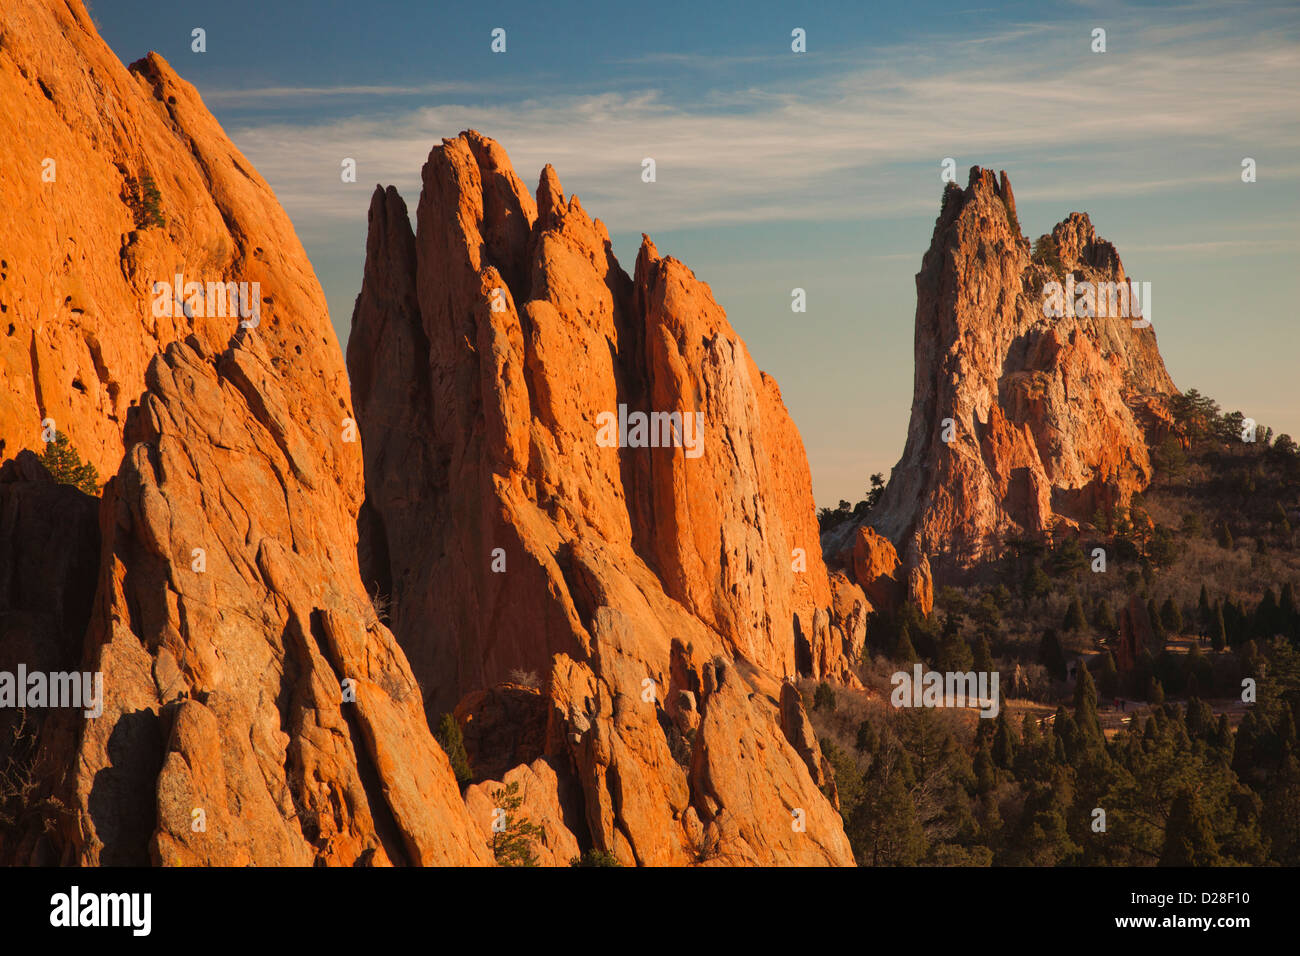 USA, Colorado, Colorado Springs, Garden of the Gods, rock formations at sunset - Stock Image